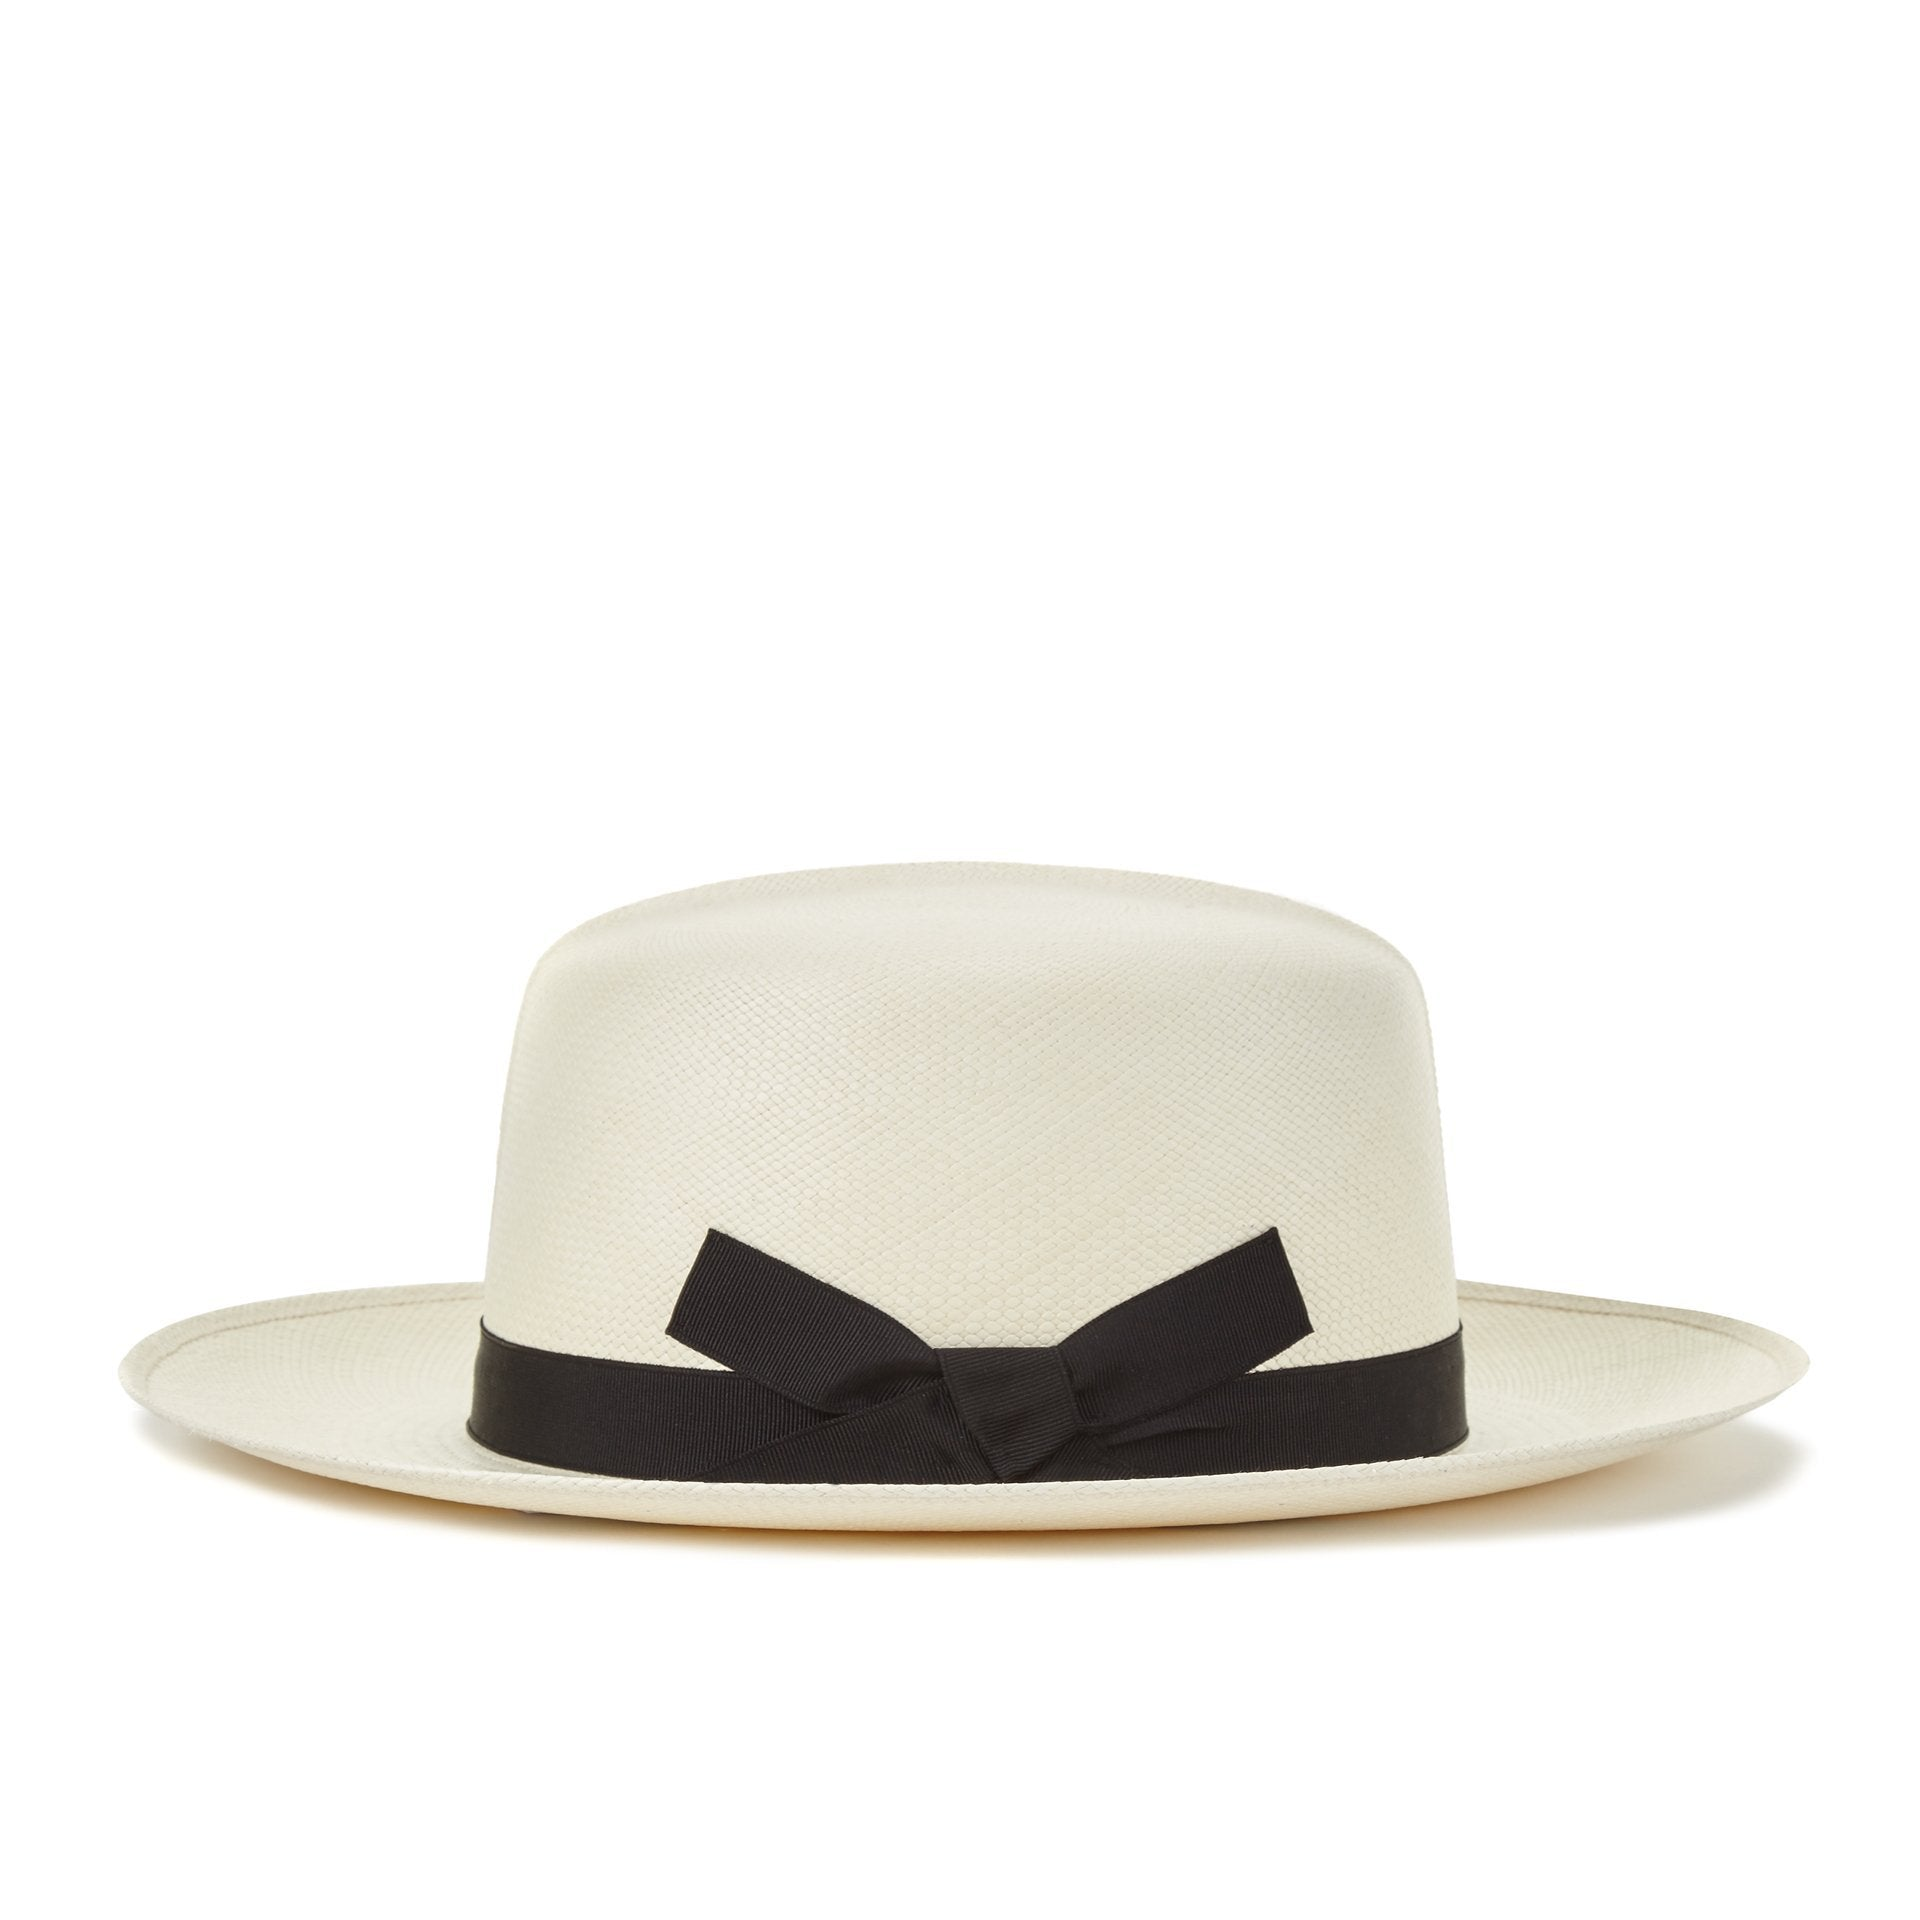 St Ives rollable panama - Women's hats - Lock & Co. Hatters London UK